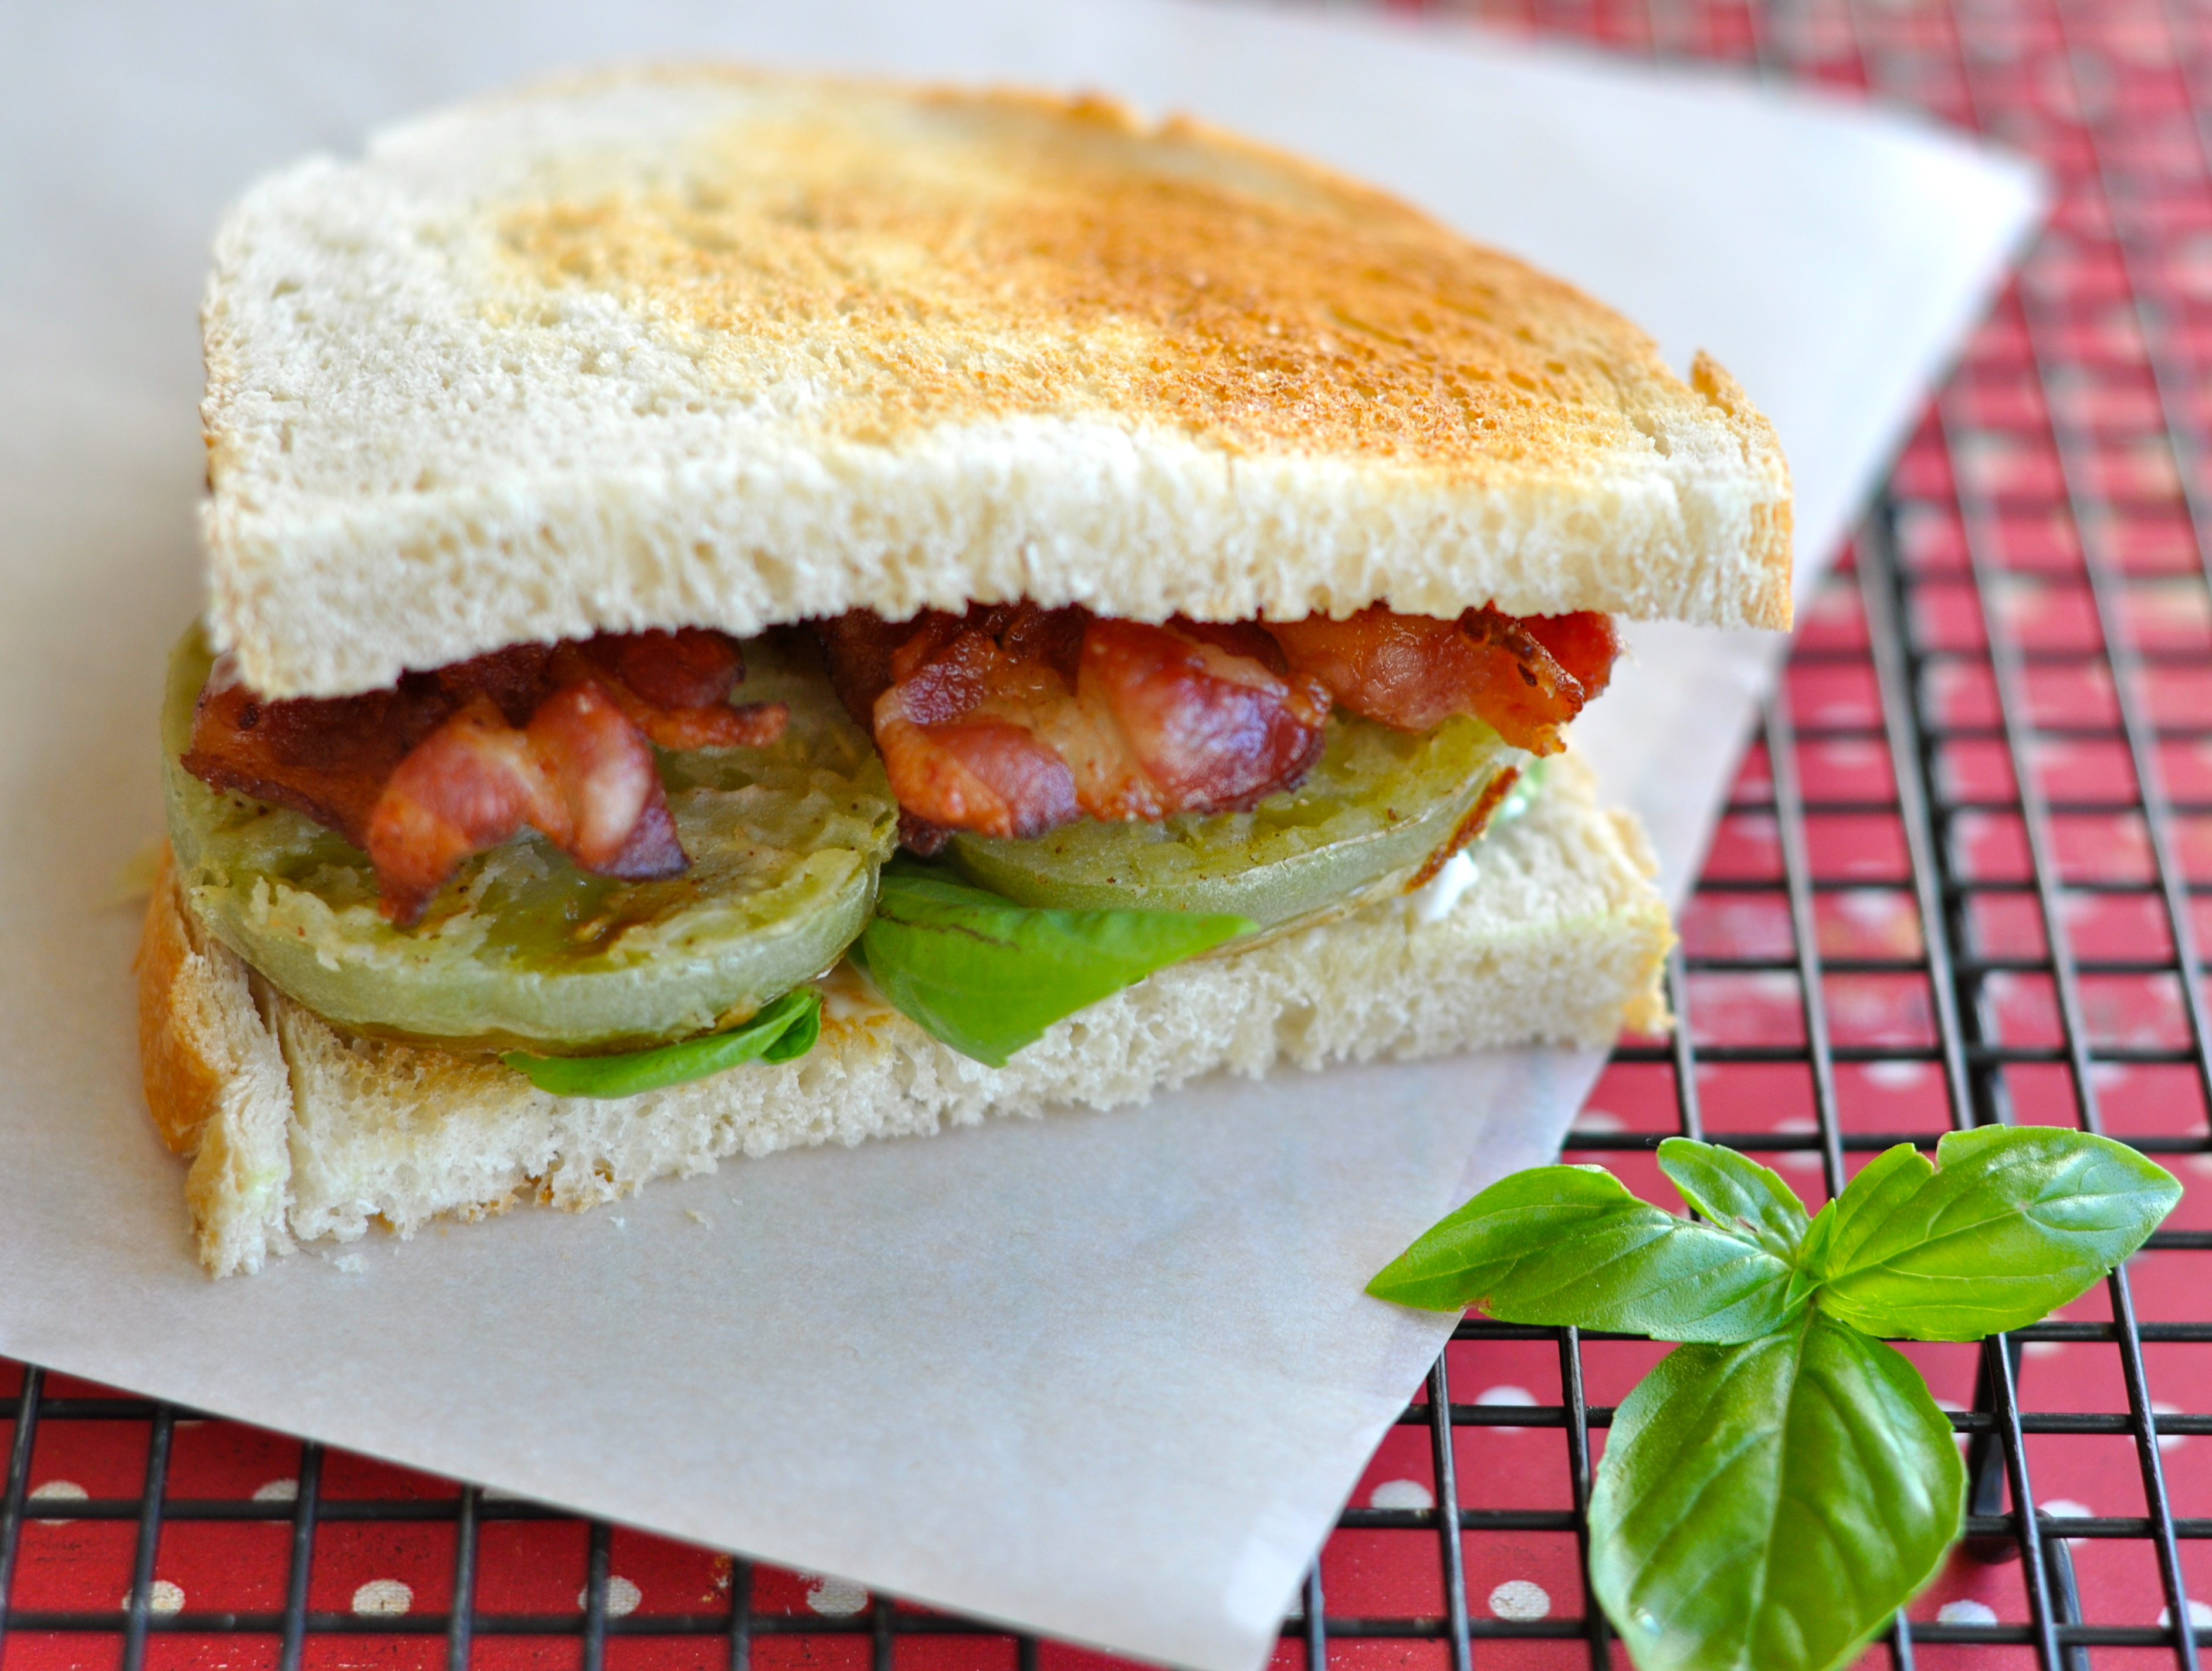 Heirloom Tomato Sandwiches Country Living Dsc